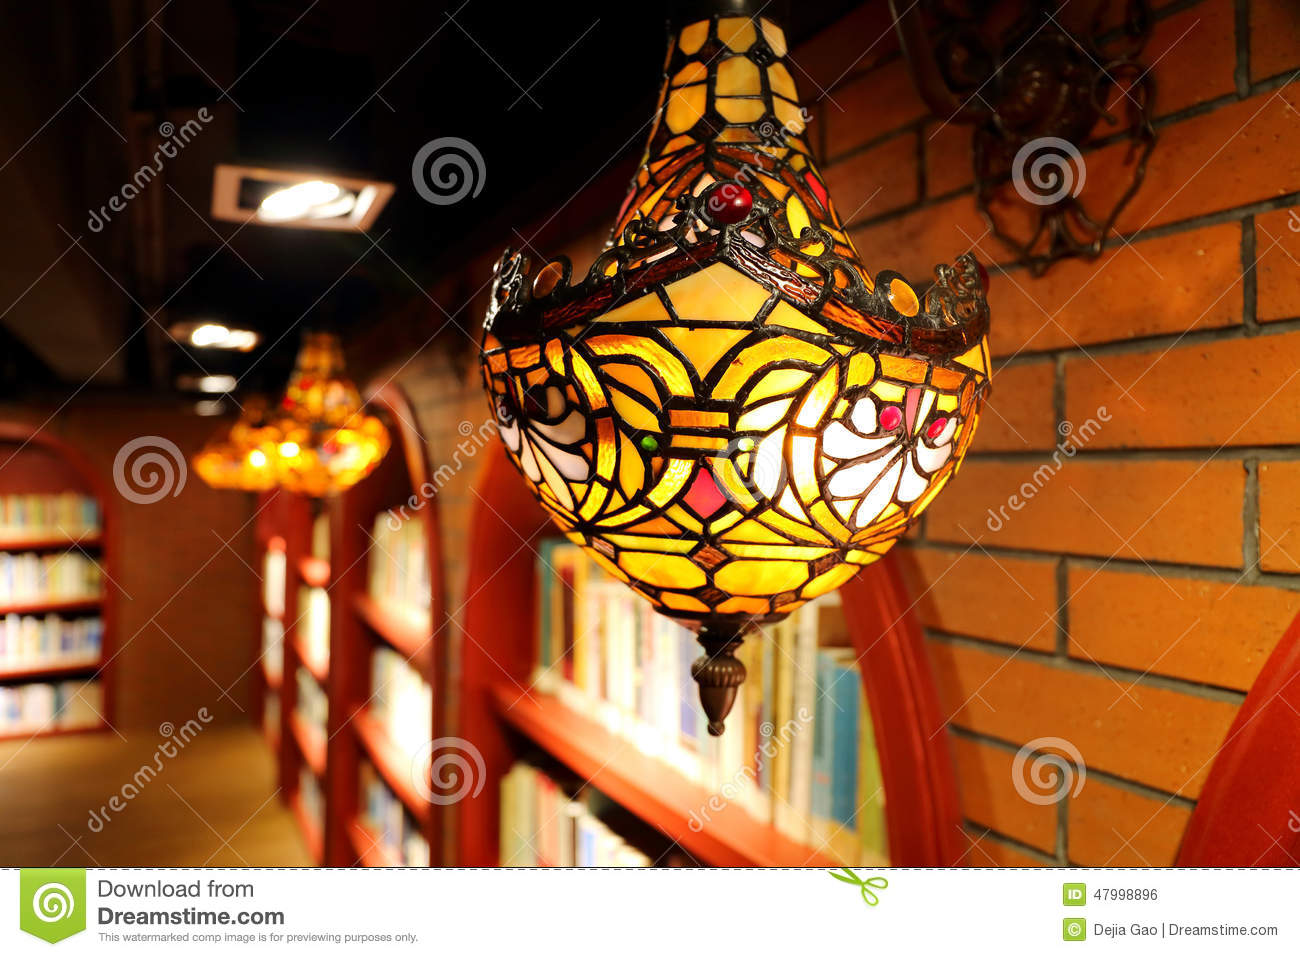 Industri vgglampa amazing factory swing vgglampa frn house doctor